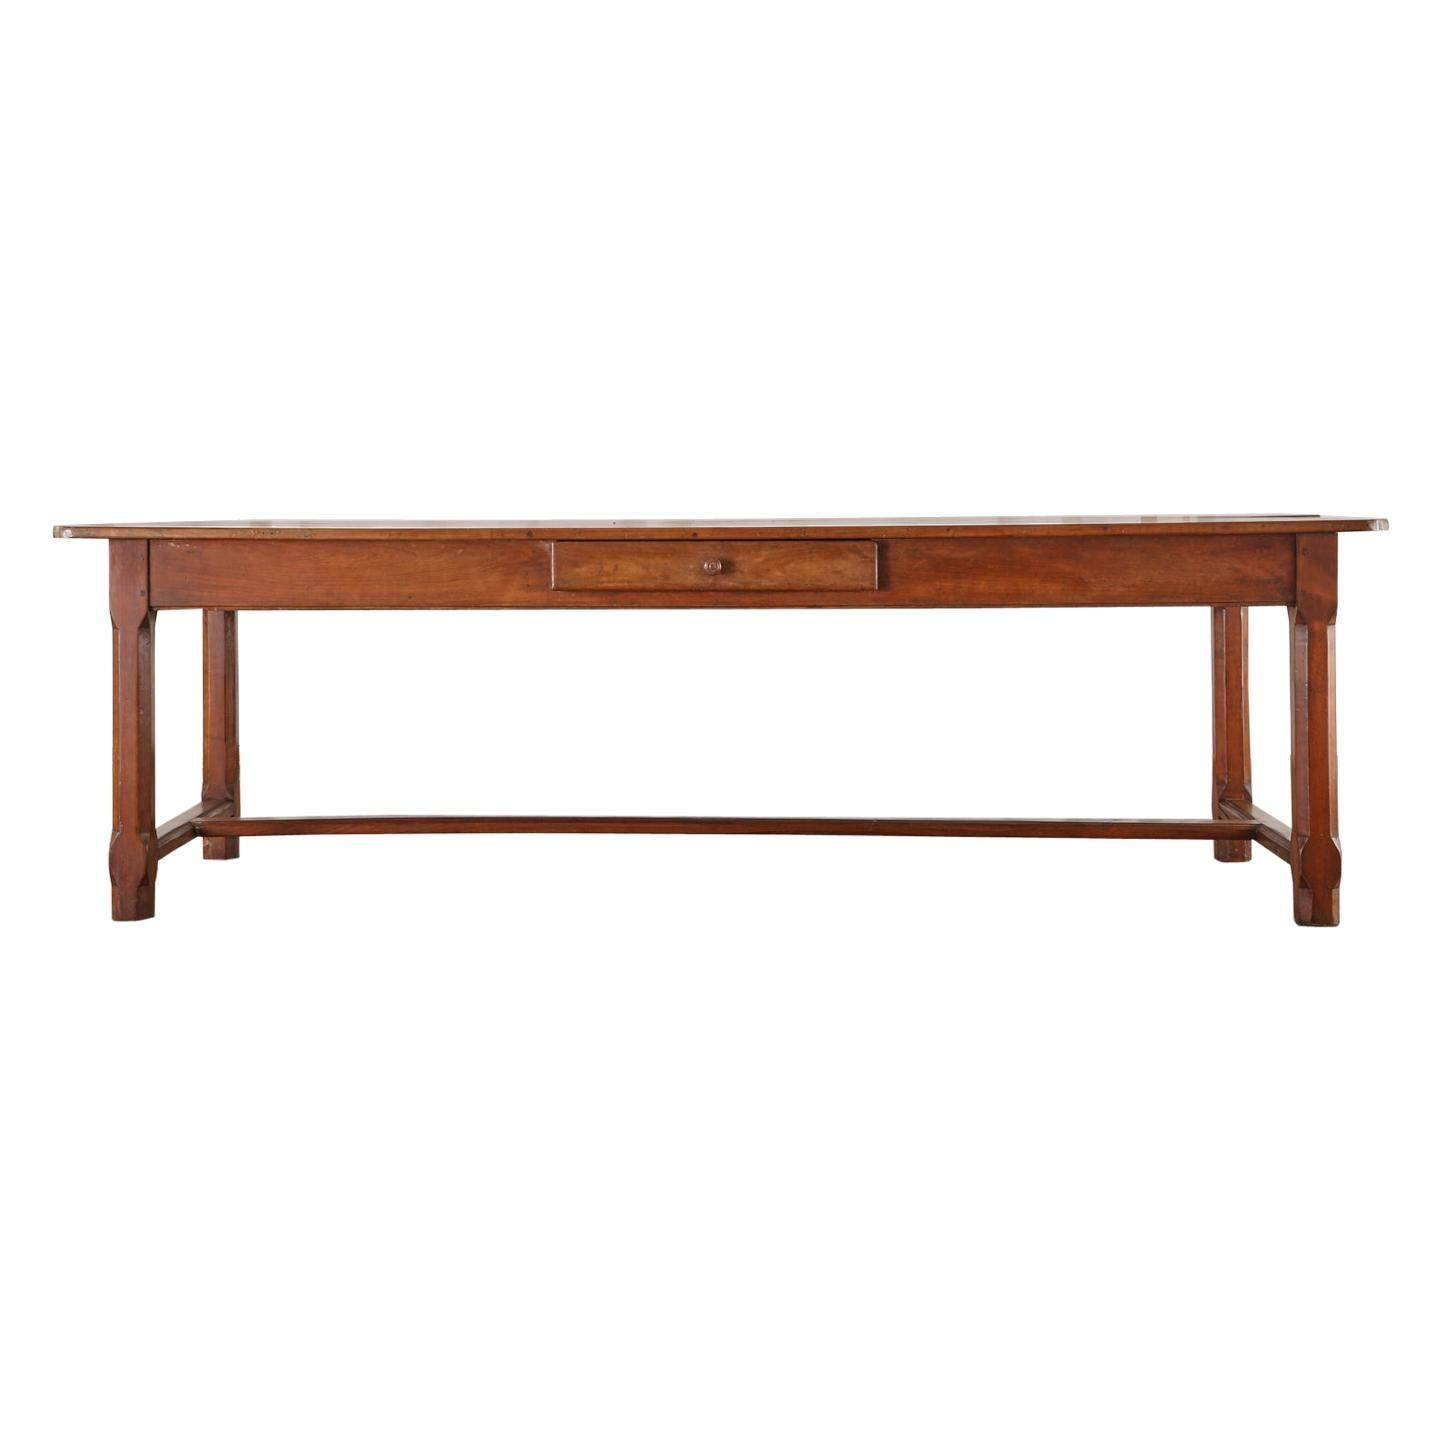 19th Century French Provincial Fruitwood Farmhouse Dining Table